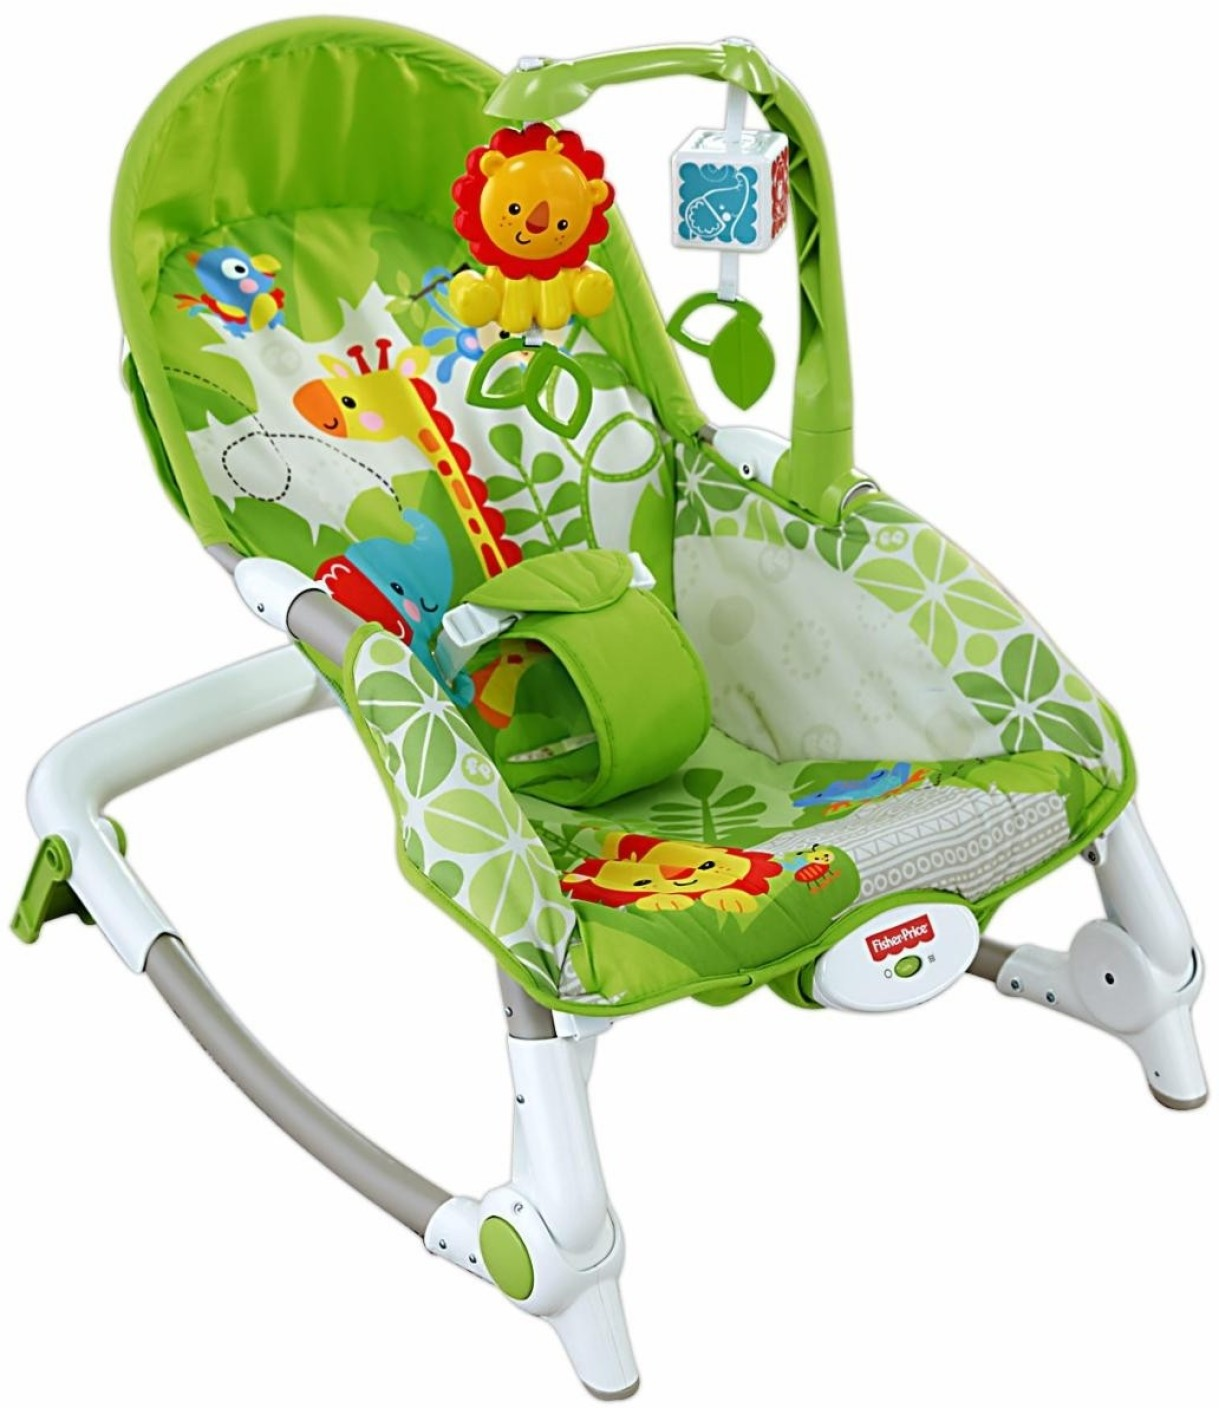 Uncategorized fisher price comfort curve bouncer new free shipping ebay - On Offer